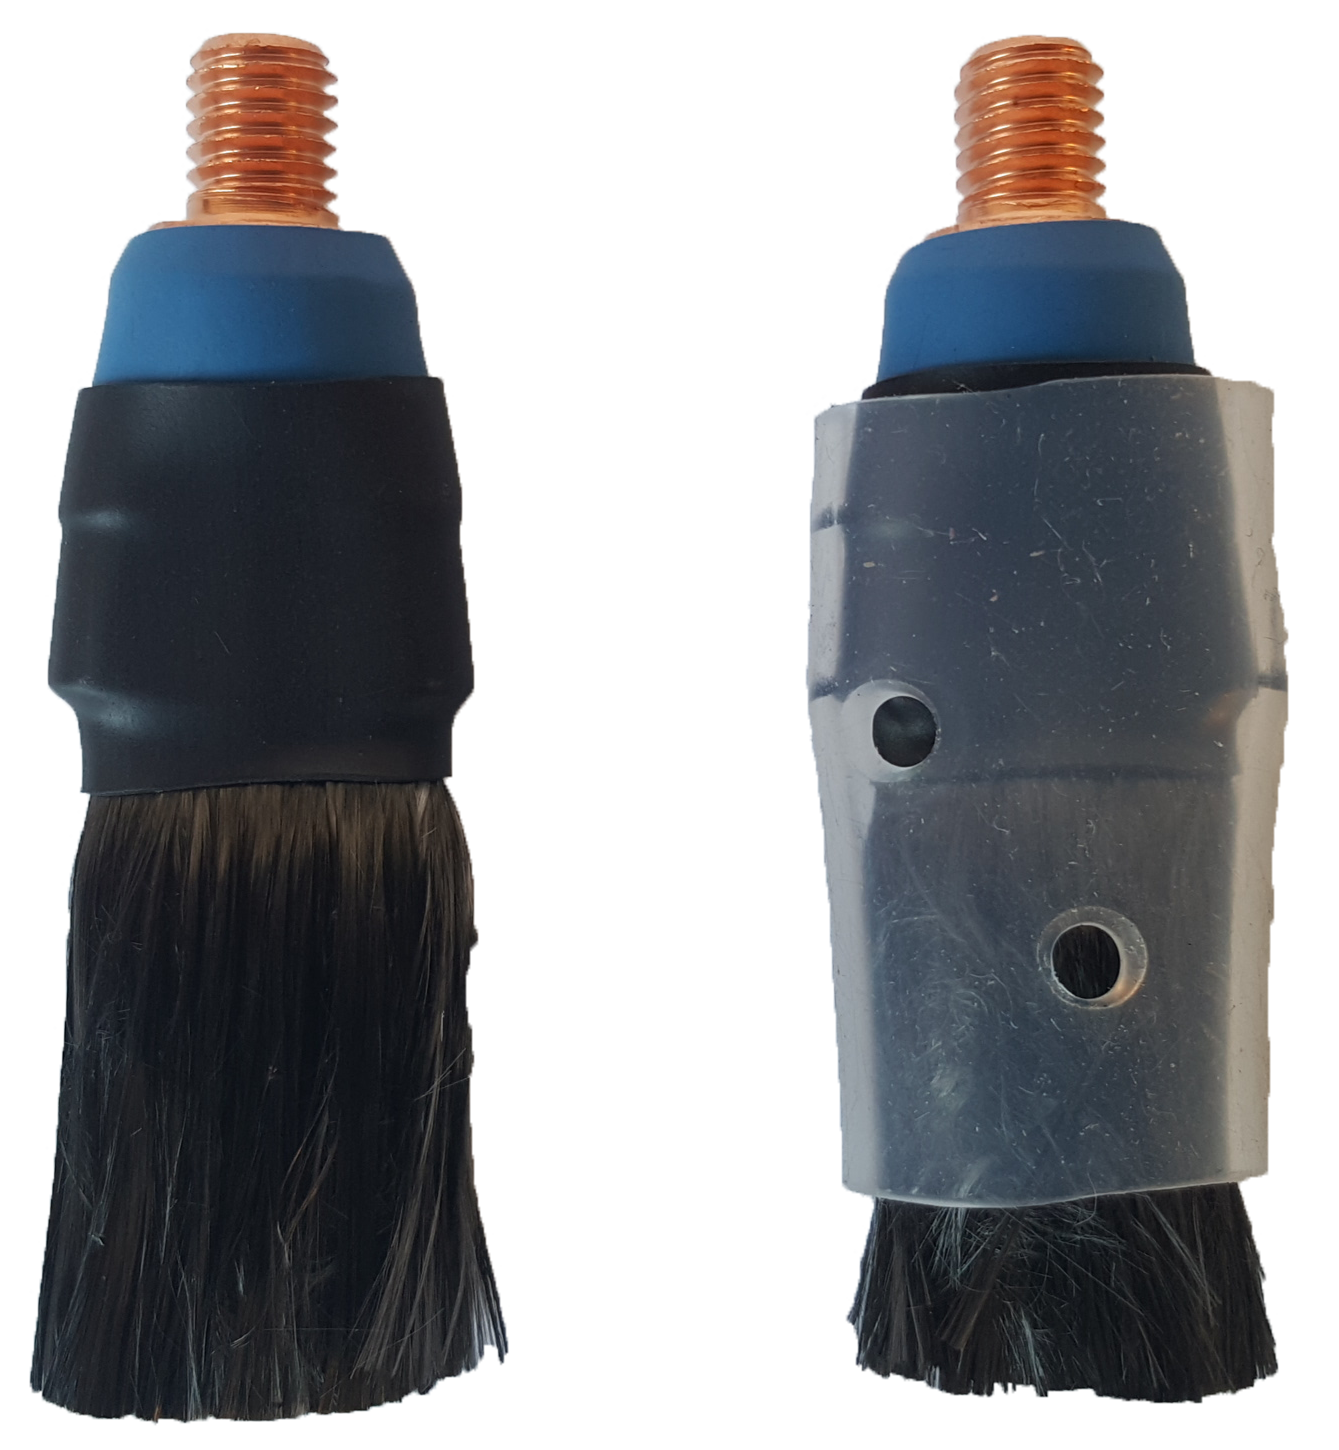 EKPRO-131 - Pro-M Brush and Pro-M Brush